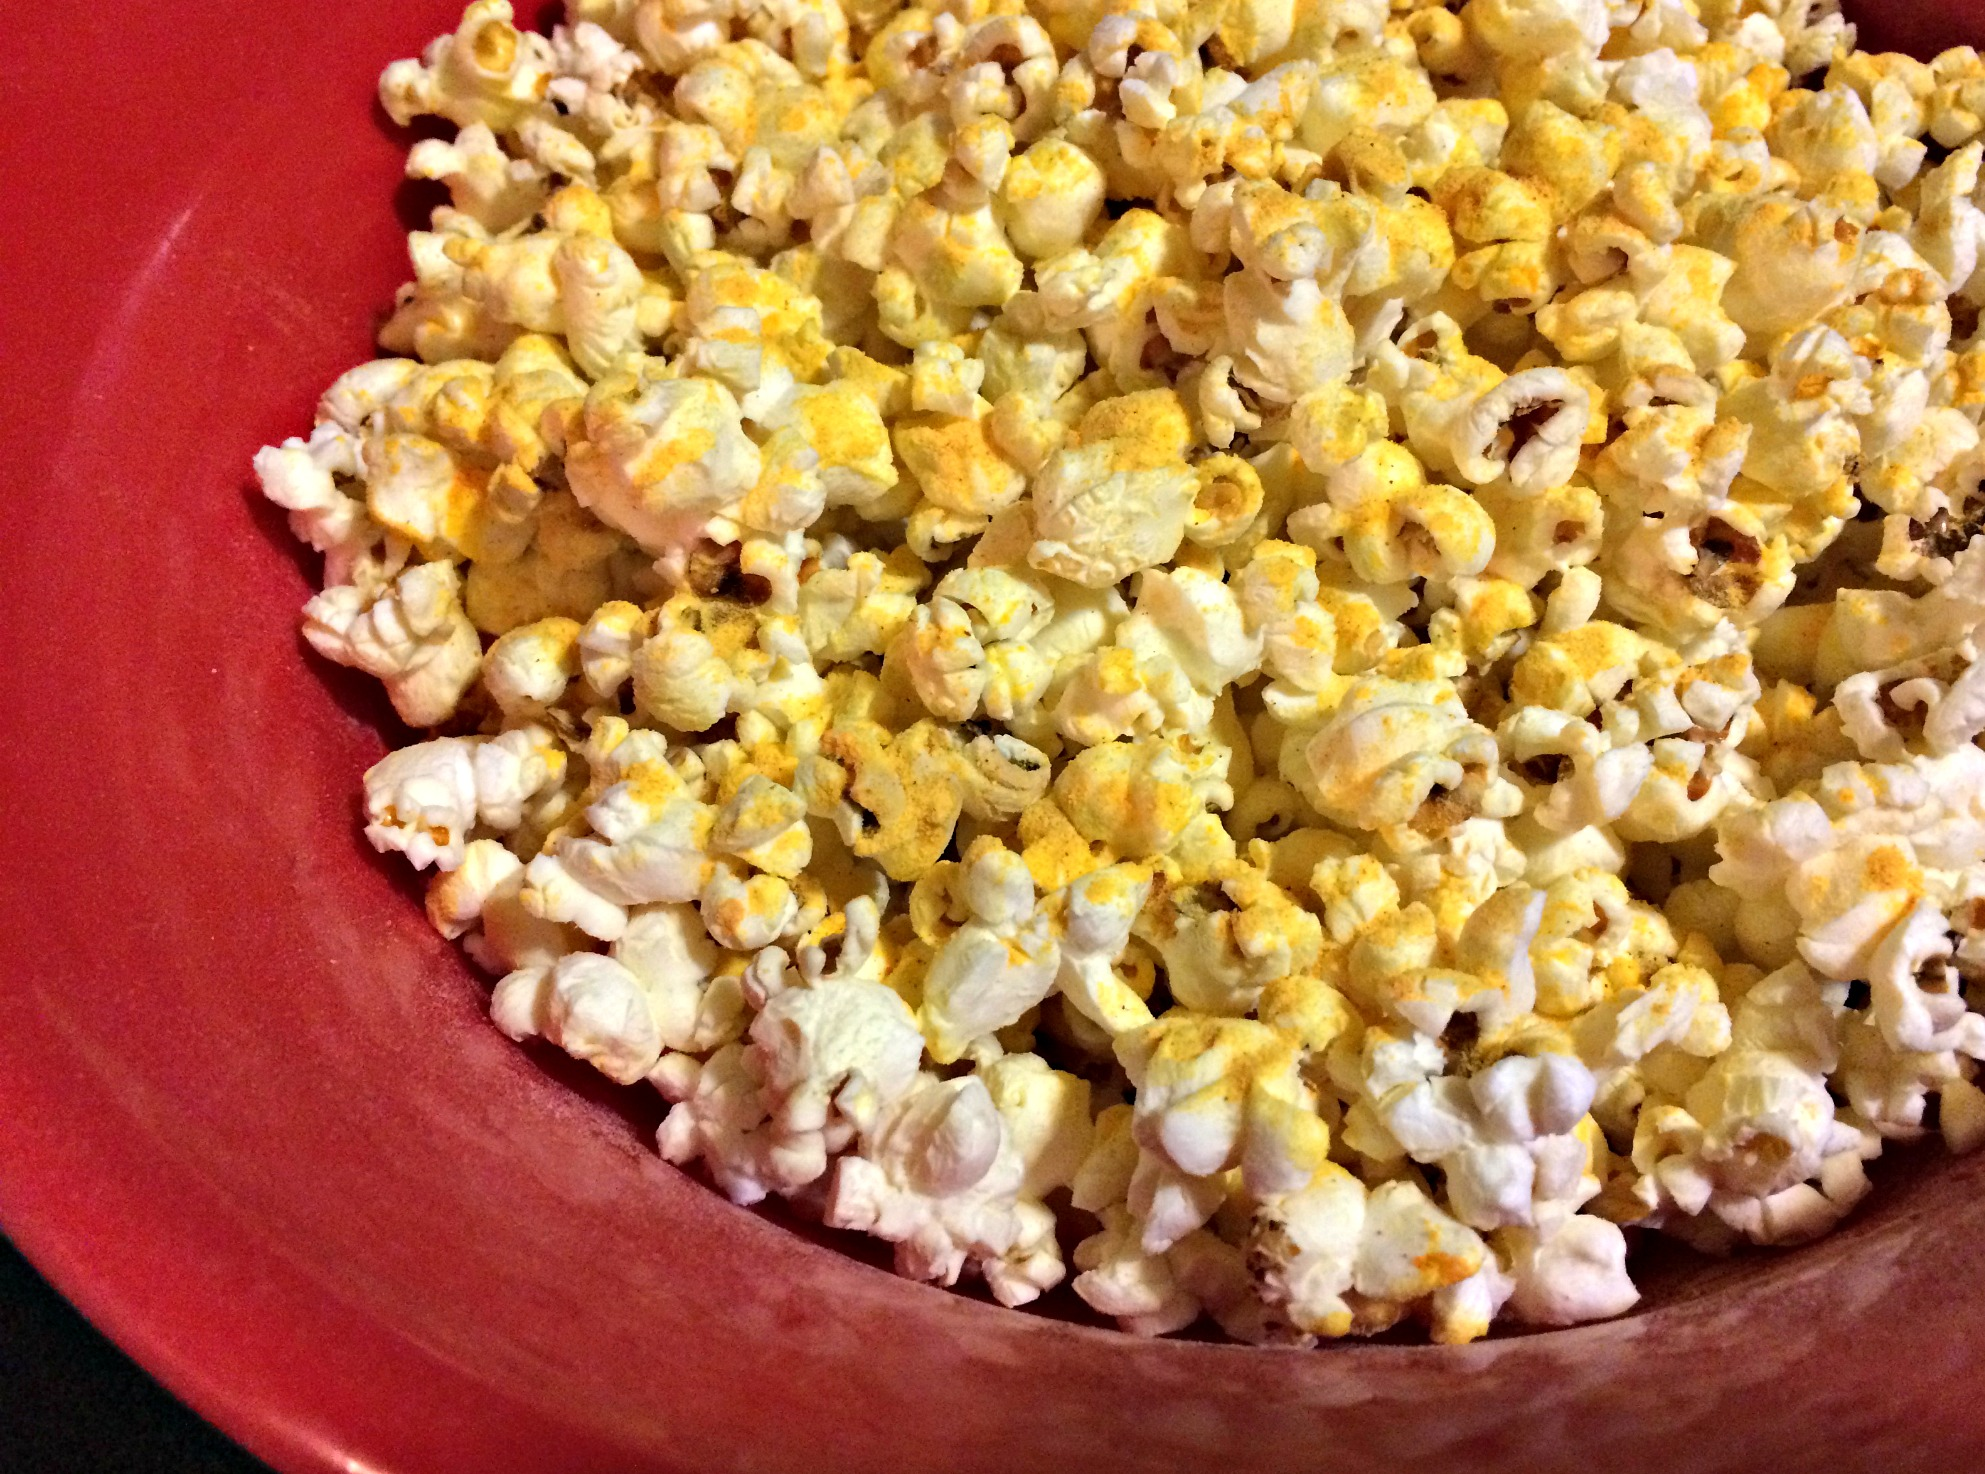 popcorn with seasonings